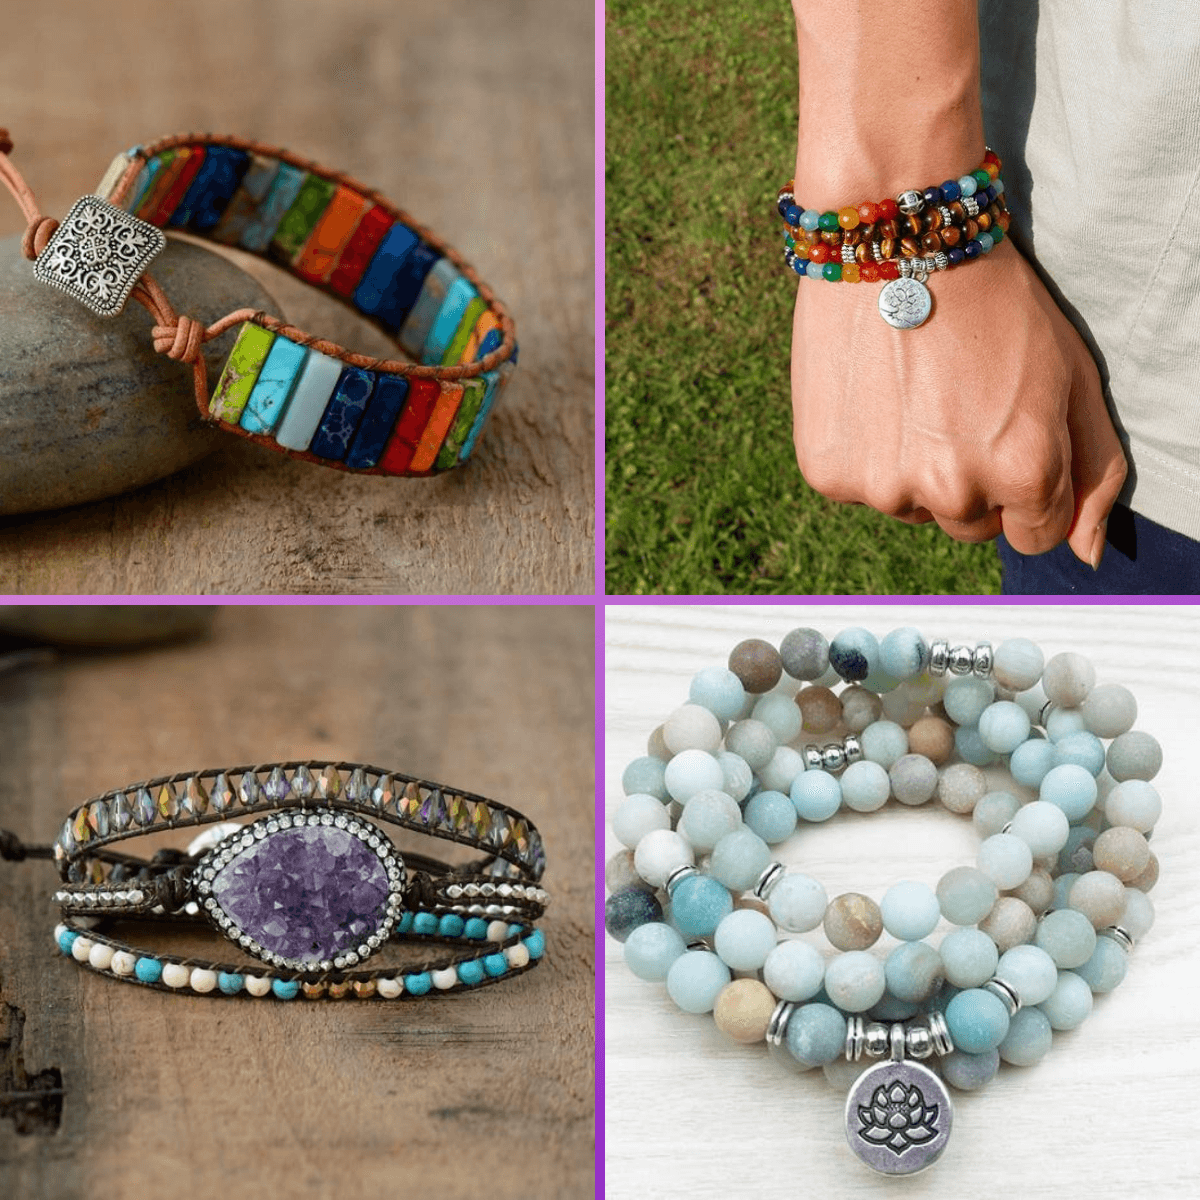 0 - (4 Bracelets)The Happiness bundle! (handmade) buy handmade bracelet